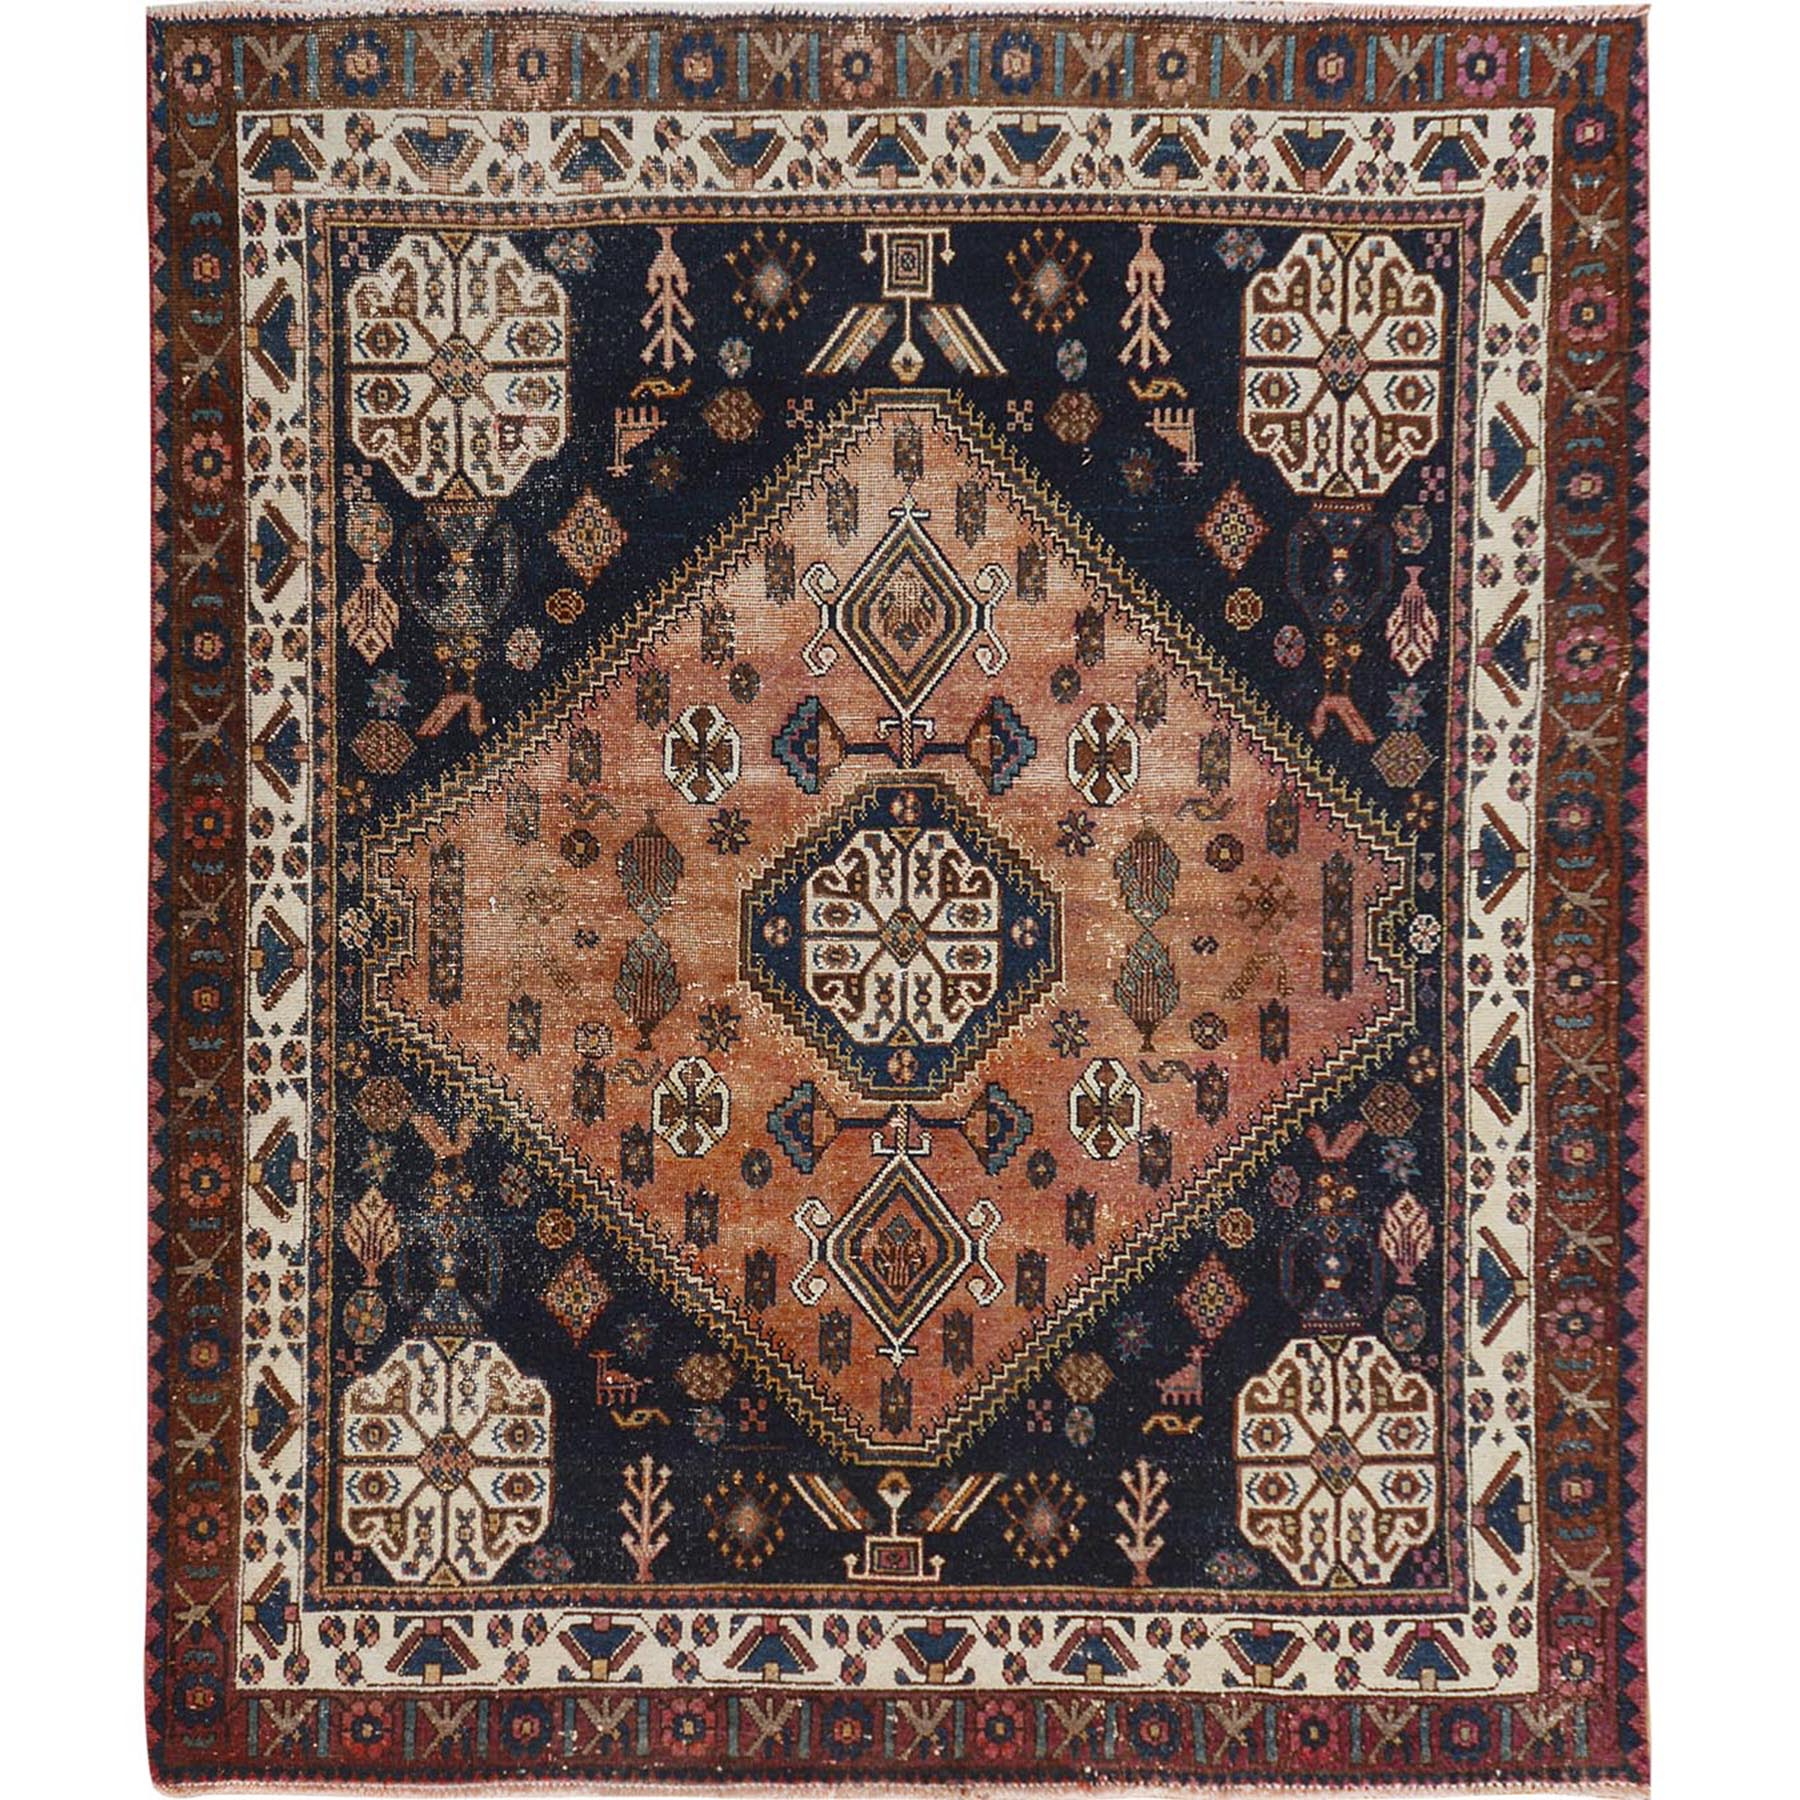 "5'7""x6'7"" Navy Blue Squarish Size Persian Shiraz Worn Down And Vintage Pure Wool Oriental Rug"